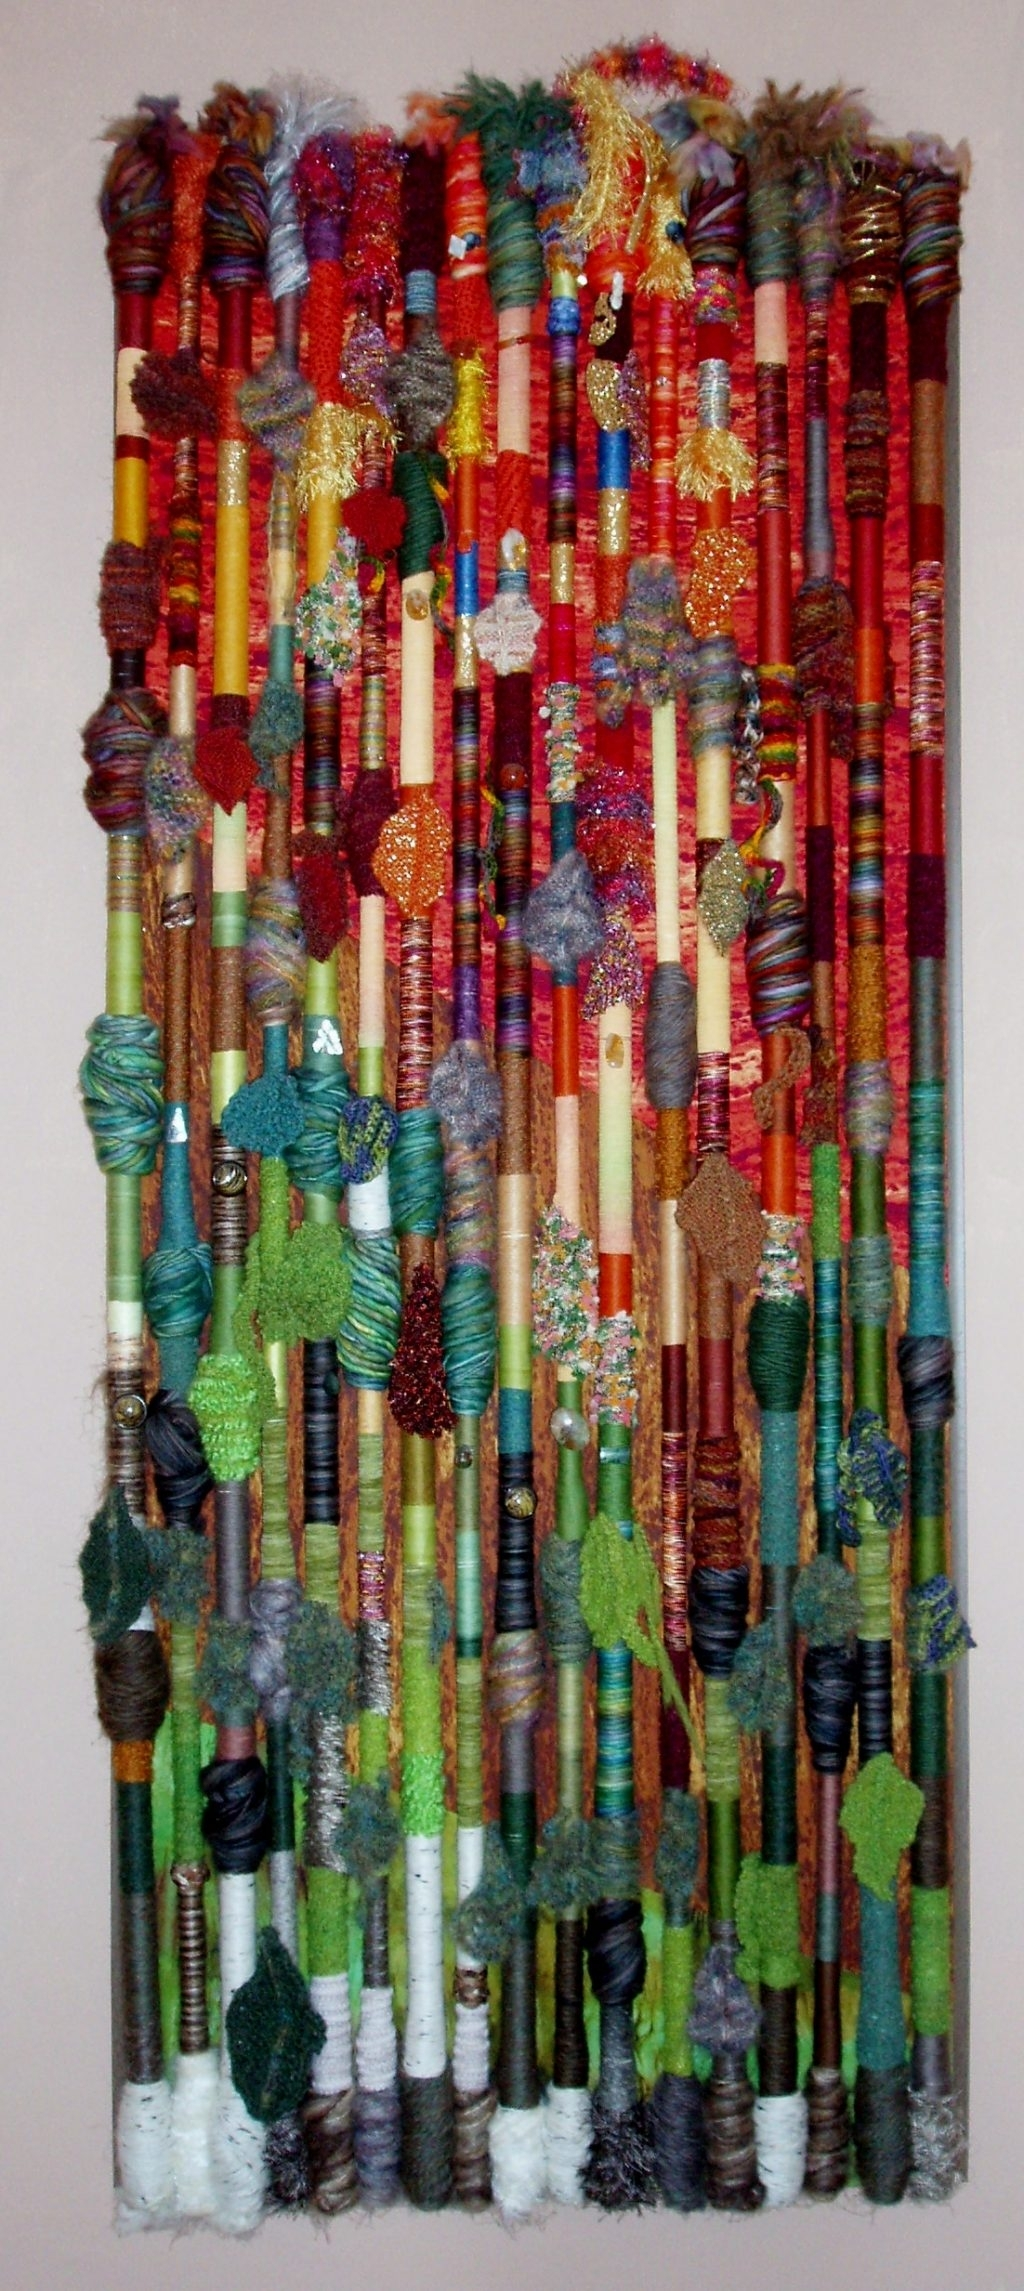 Inspirational Design Ideas Textile Wall Hangings With Fiber Art With Regard To Recent Hanging Textile Wall Art (Gallery 2 of 15)